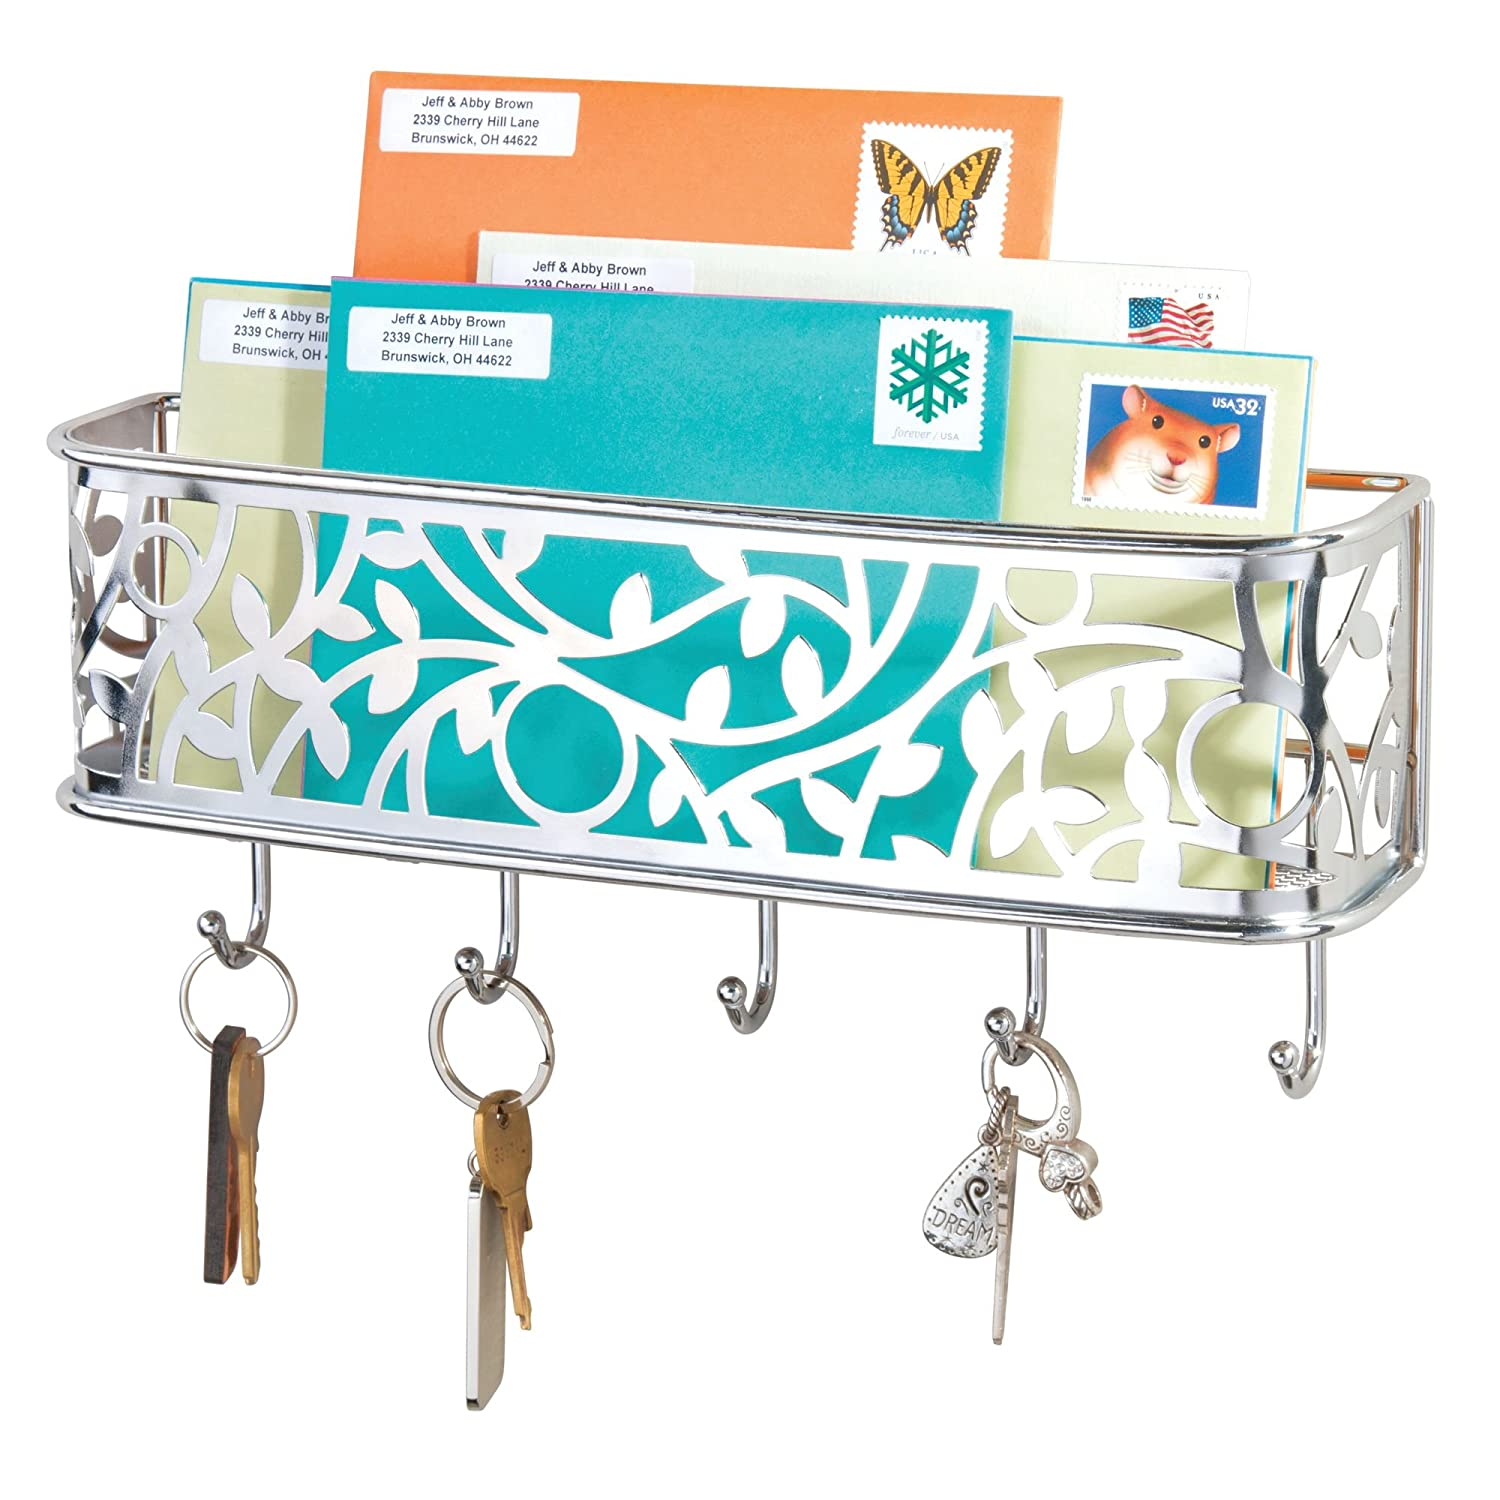 Mail, Letter Holder, Key Rack Organizer for Entryway, Hallway, Mudroom - Wall Mount, Chrome